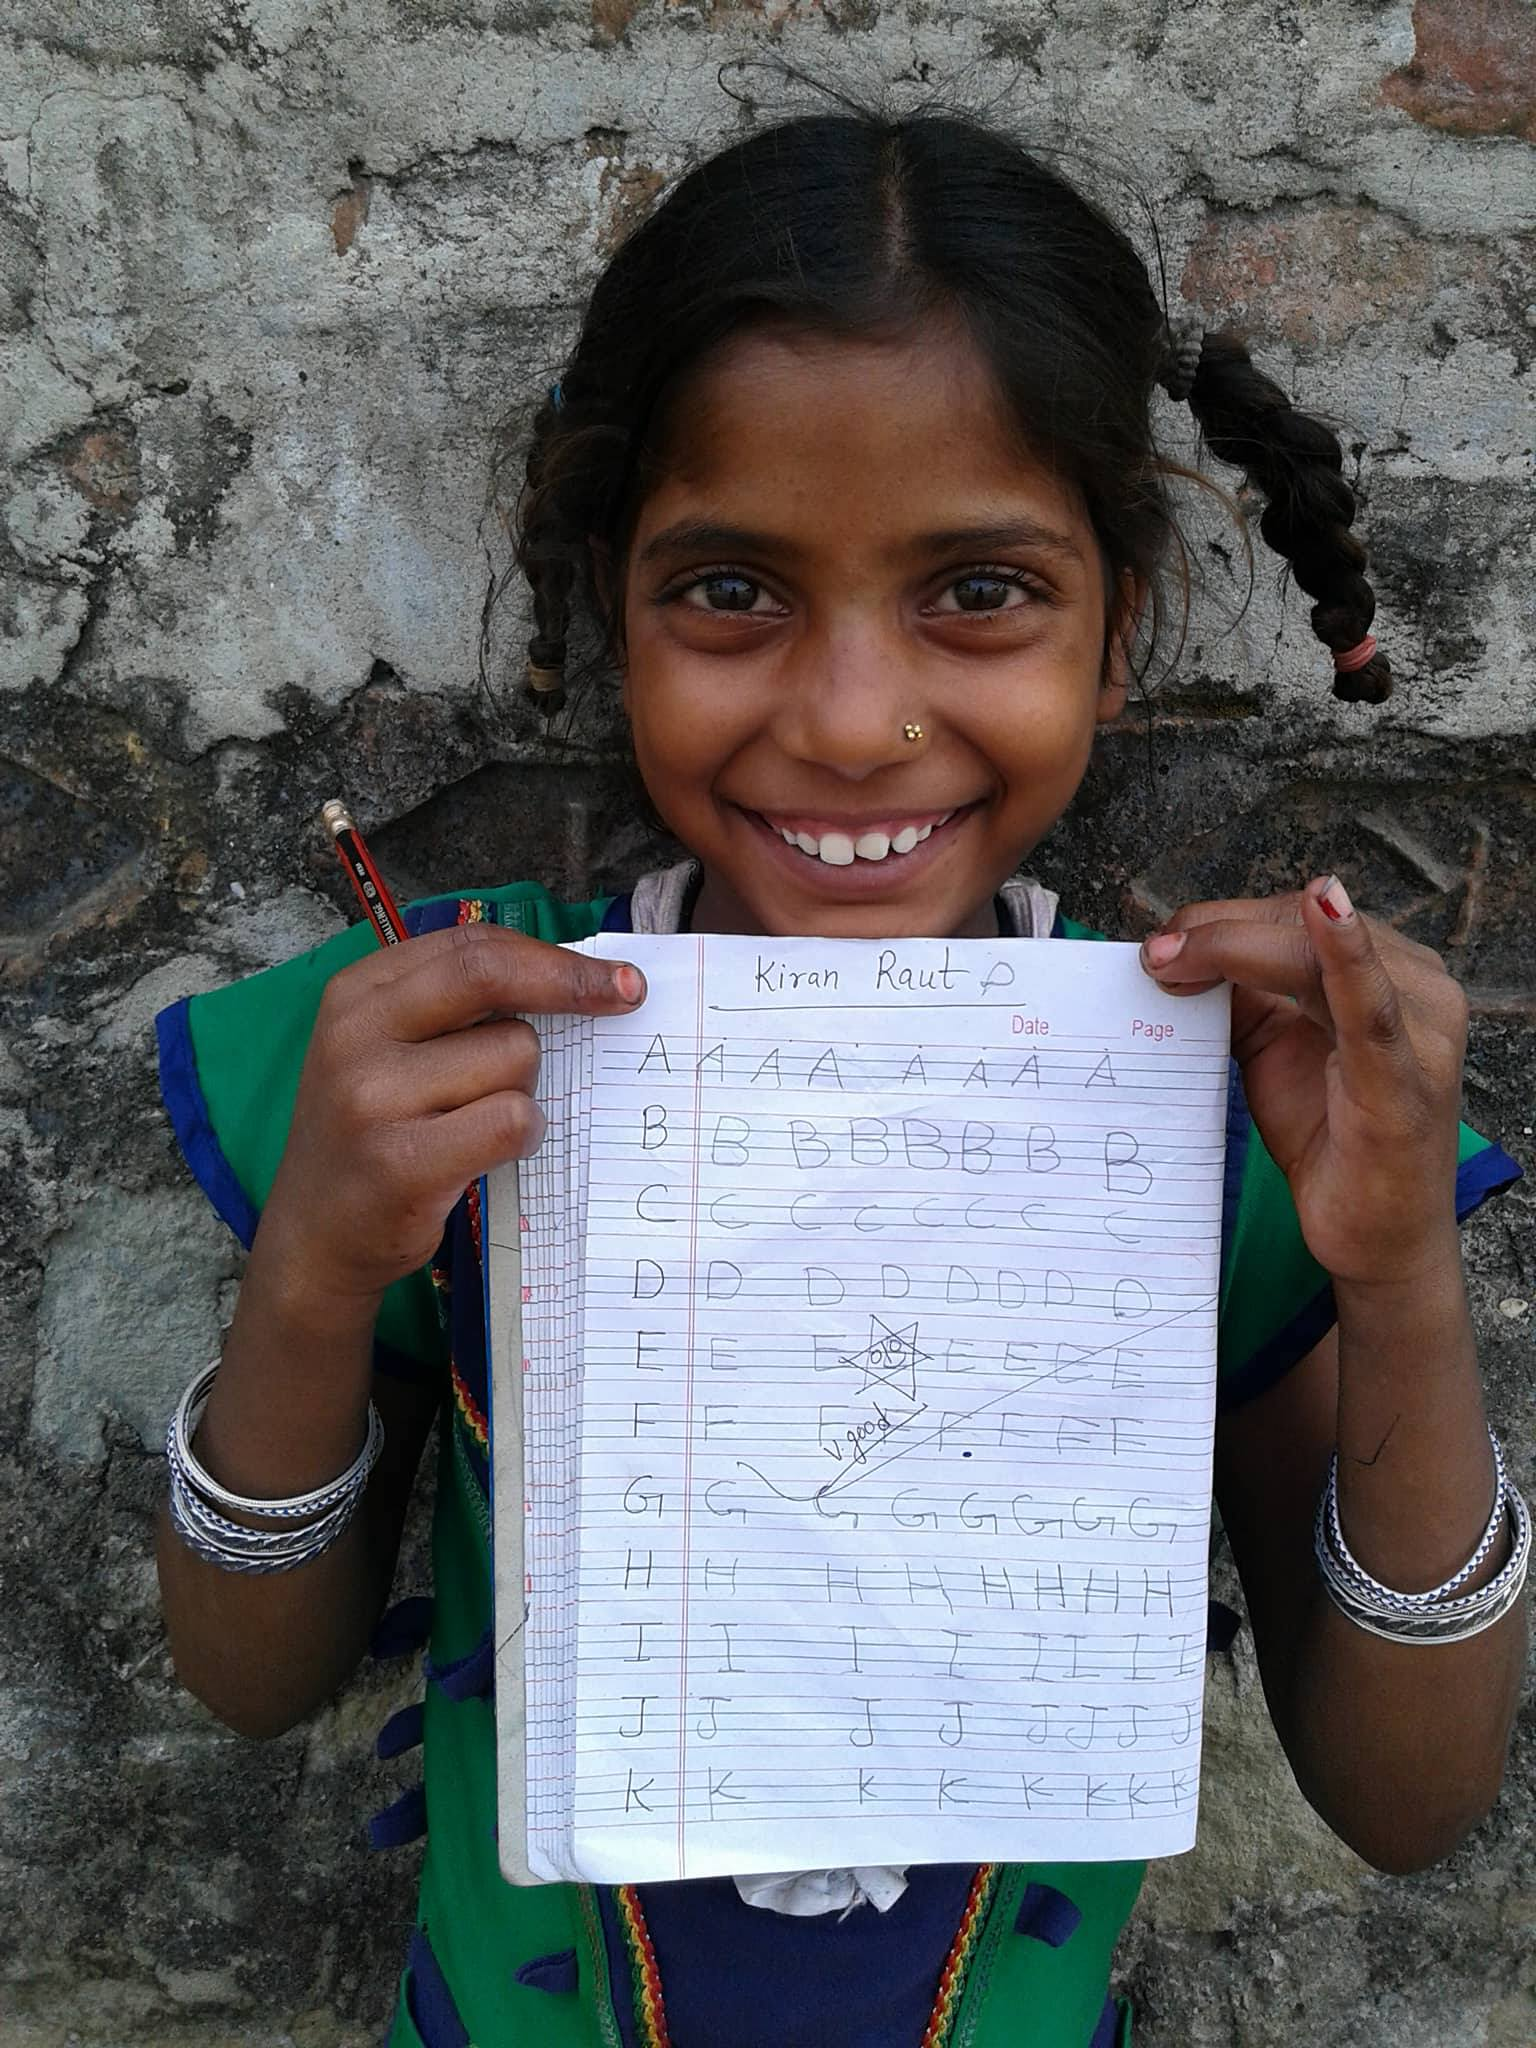 Children from the slums are not often provided with opportunities or funding for education without help from resources outside their families.